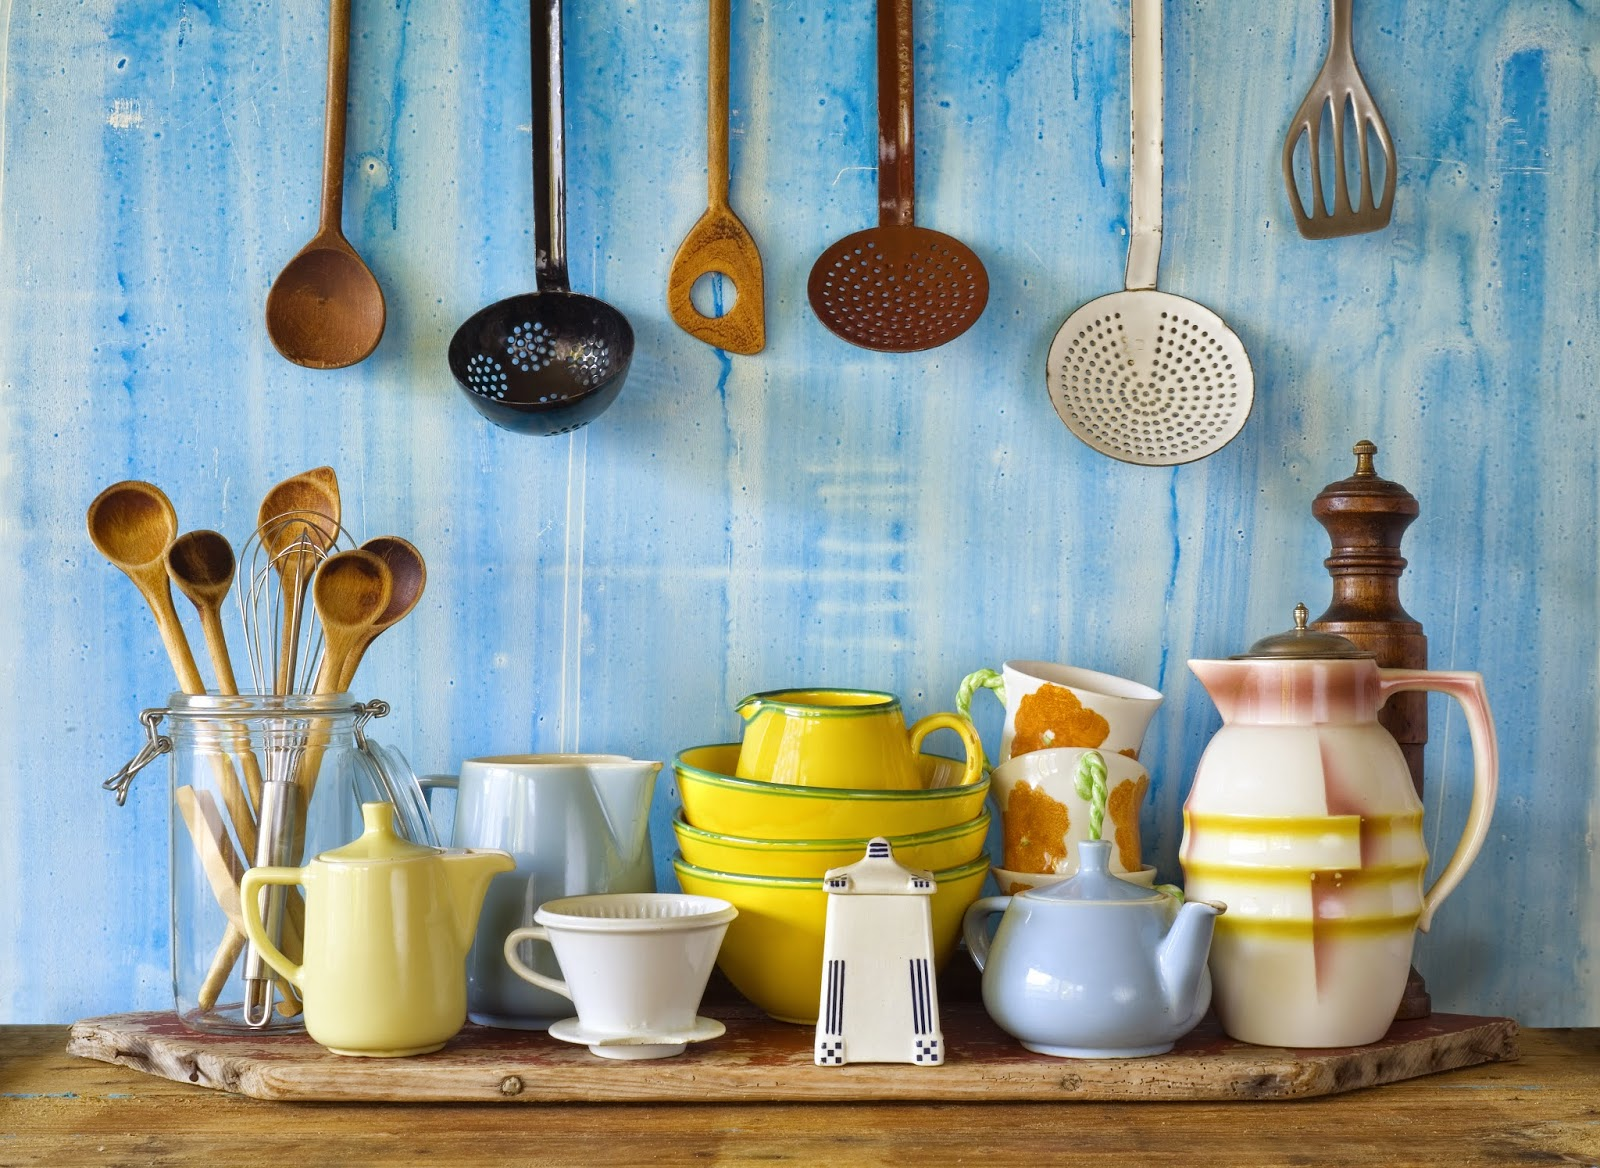 Top 5 Places to Buy Kitchen Equipment | Foodie Hong Kong